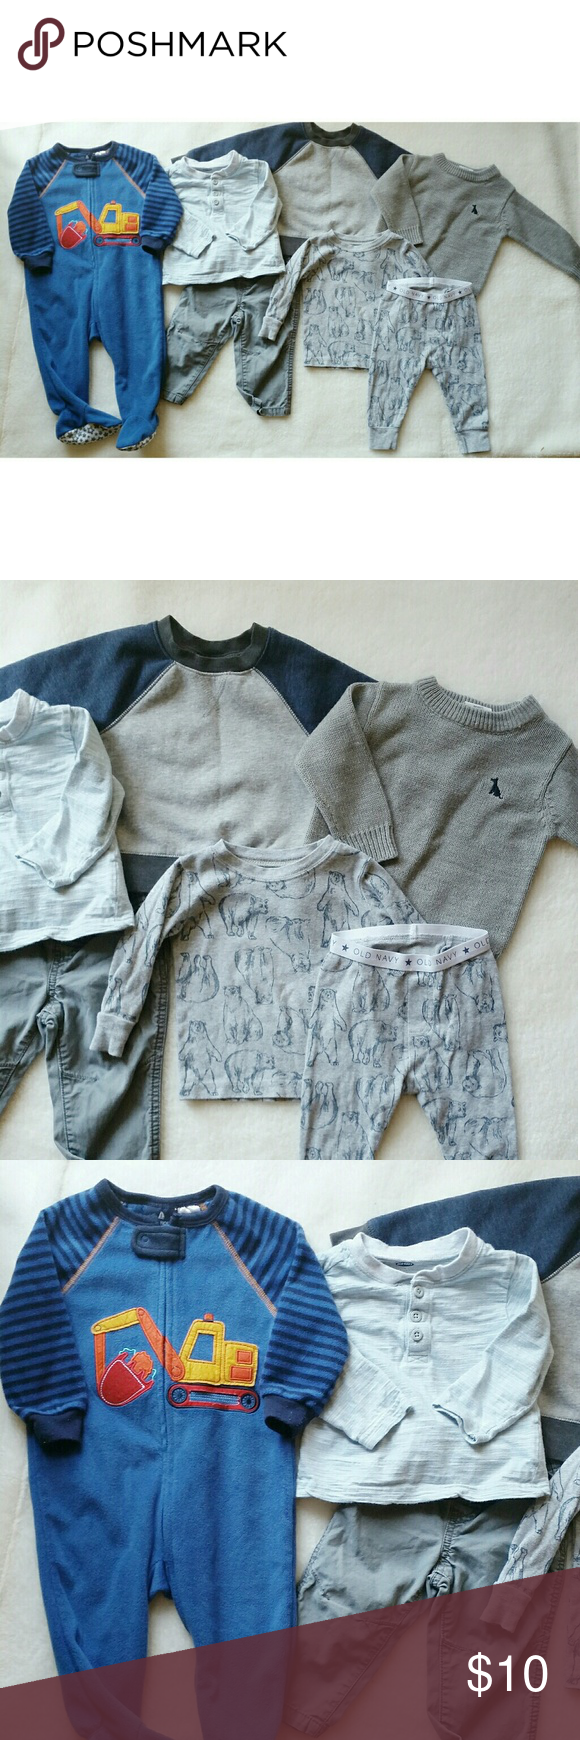 6-12 months Bundle Baby boy bundle. Sizes 6-12 months. I'm adding in an extra set of pajamas and sweat pants for free. The pajamas have been worn several times and unfortunately the top has some stains. The sweat pants have wash wear. Also, two of the tops have minor stains as well. I have not tried treating them so it's possible they can be removed. Brands such as Old Navy, Carter's, Cat & Jack, etc. Perfect for fall and winter! Normal wear.   ❌firm price Old Navy Matching Sets